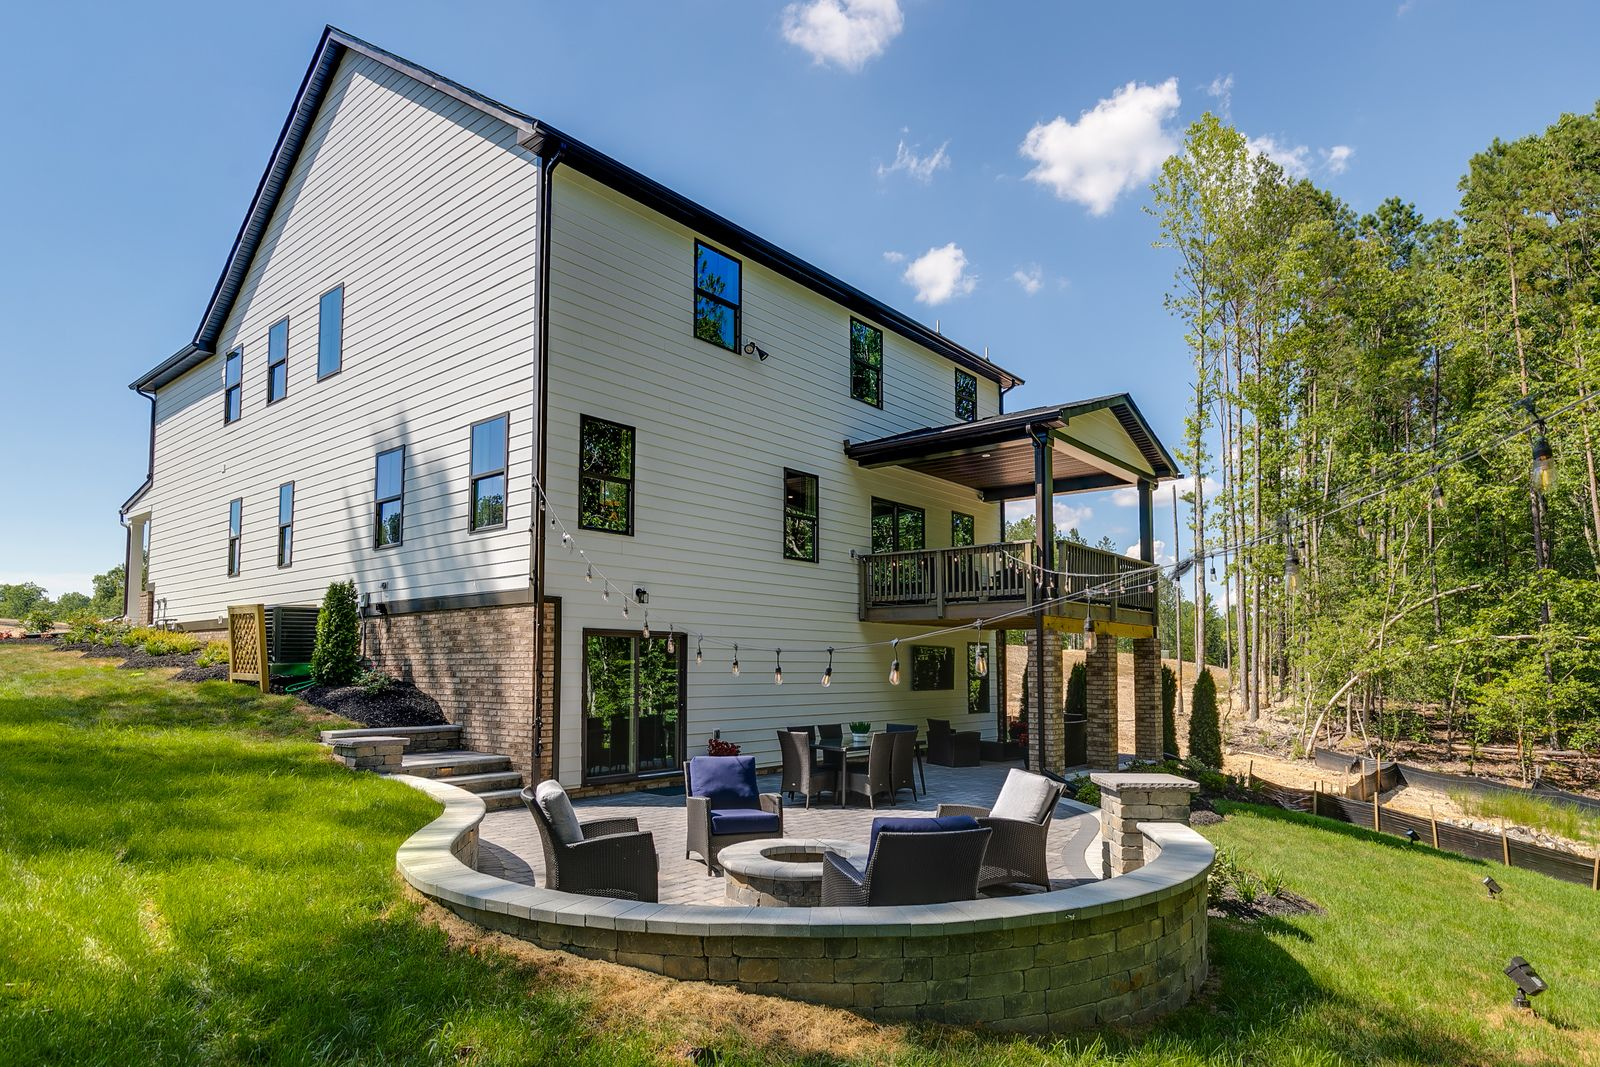 WELCOME TO BAYHILL POINTE – THERE HAS NEVER BEEN A BETTER TIME TO BUY!:3homesites remain, we have sold 45 this year! Final opportunity to buy our best basement lots backingto nature and trees. These dream lotswont last long,click here.